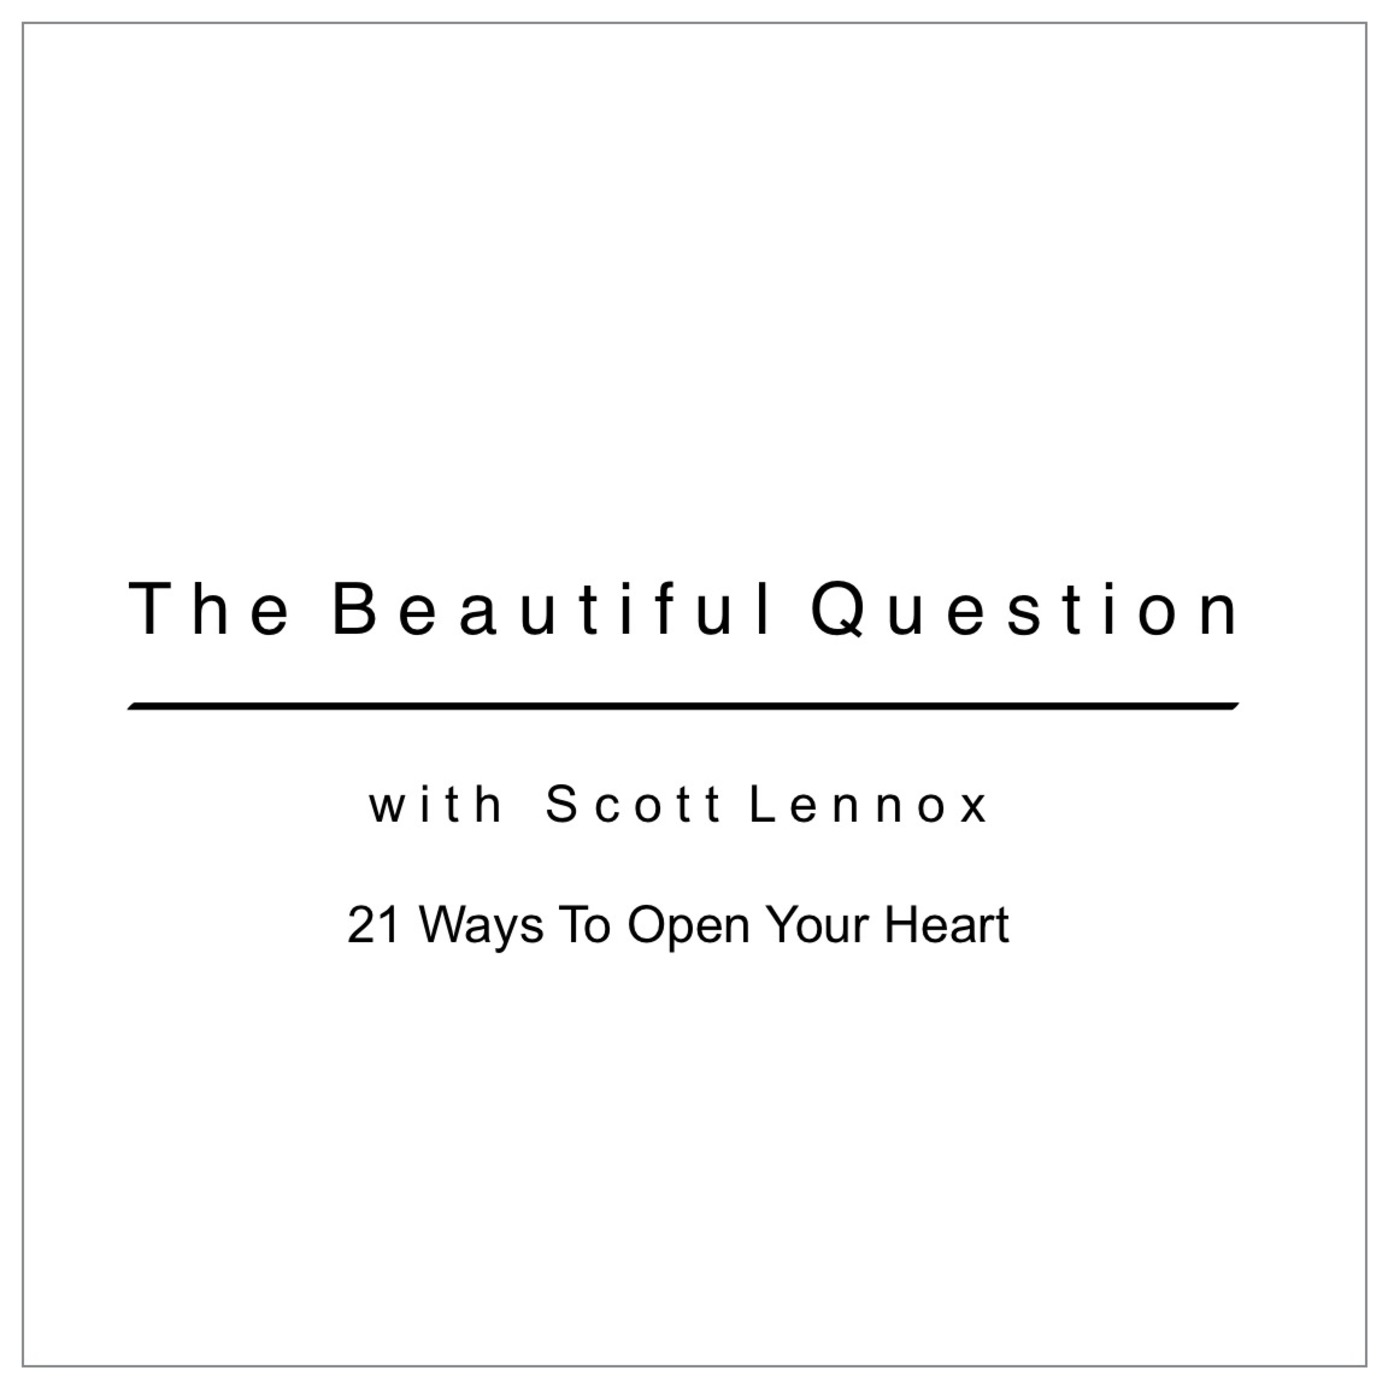 21 Ways To Open Your Heart